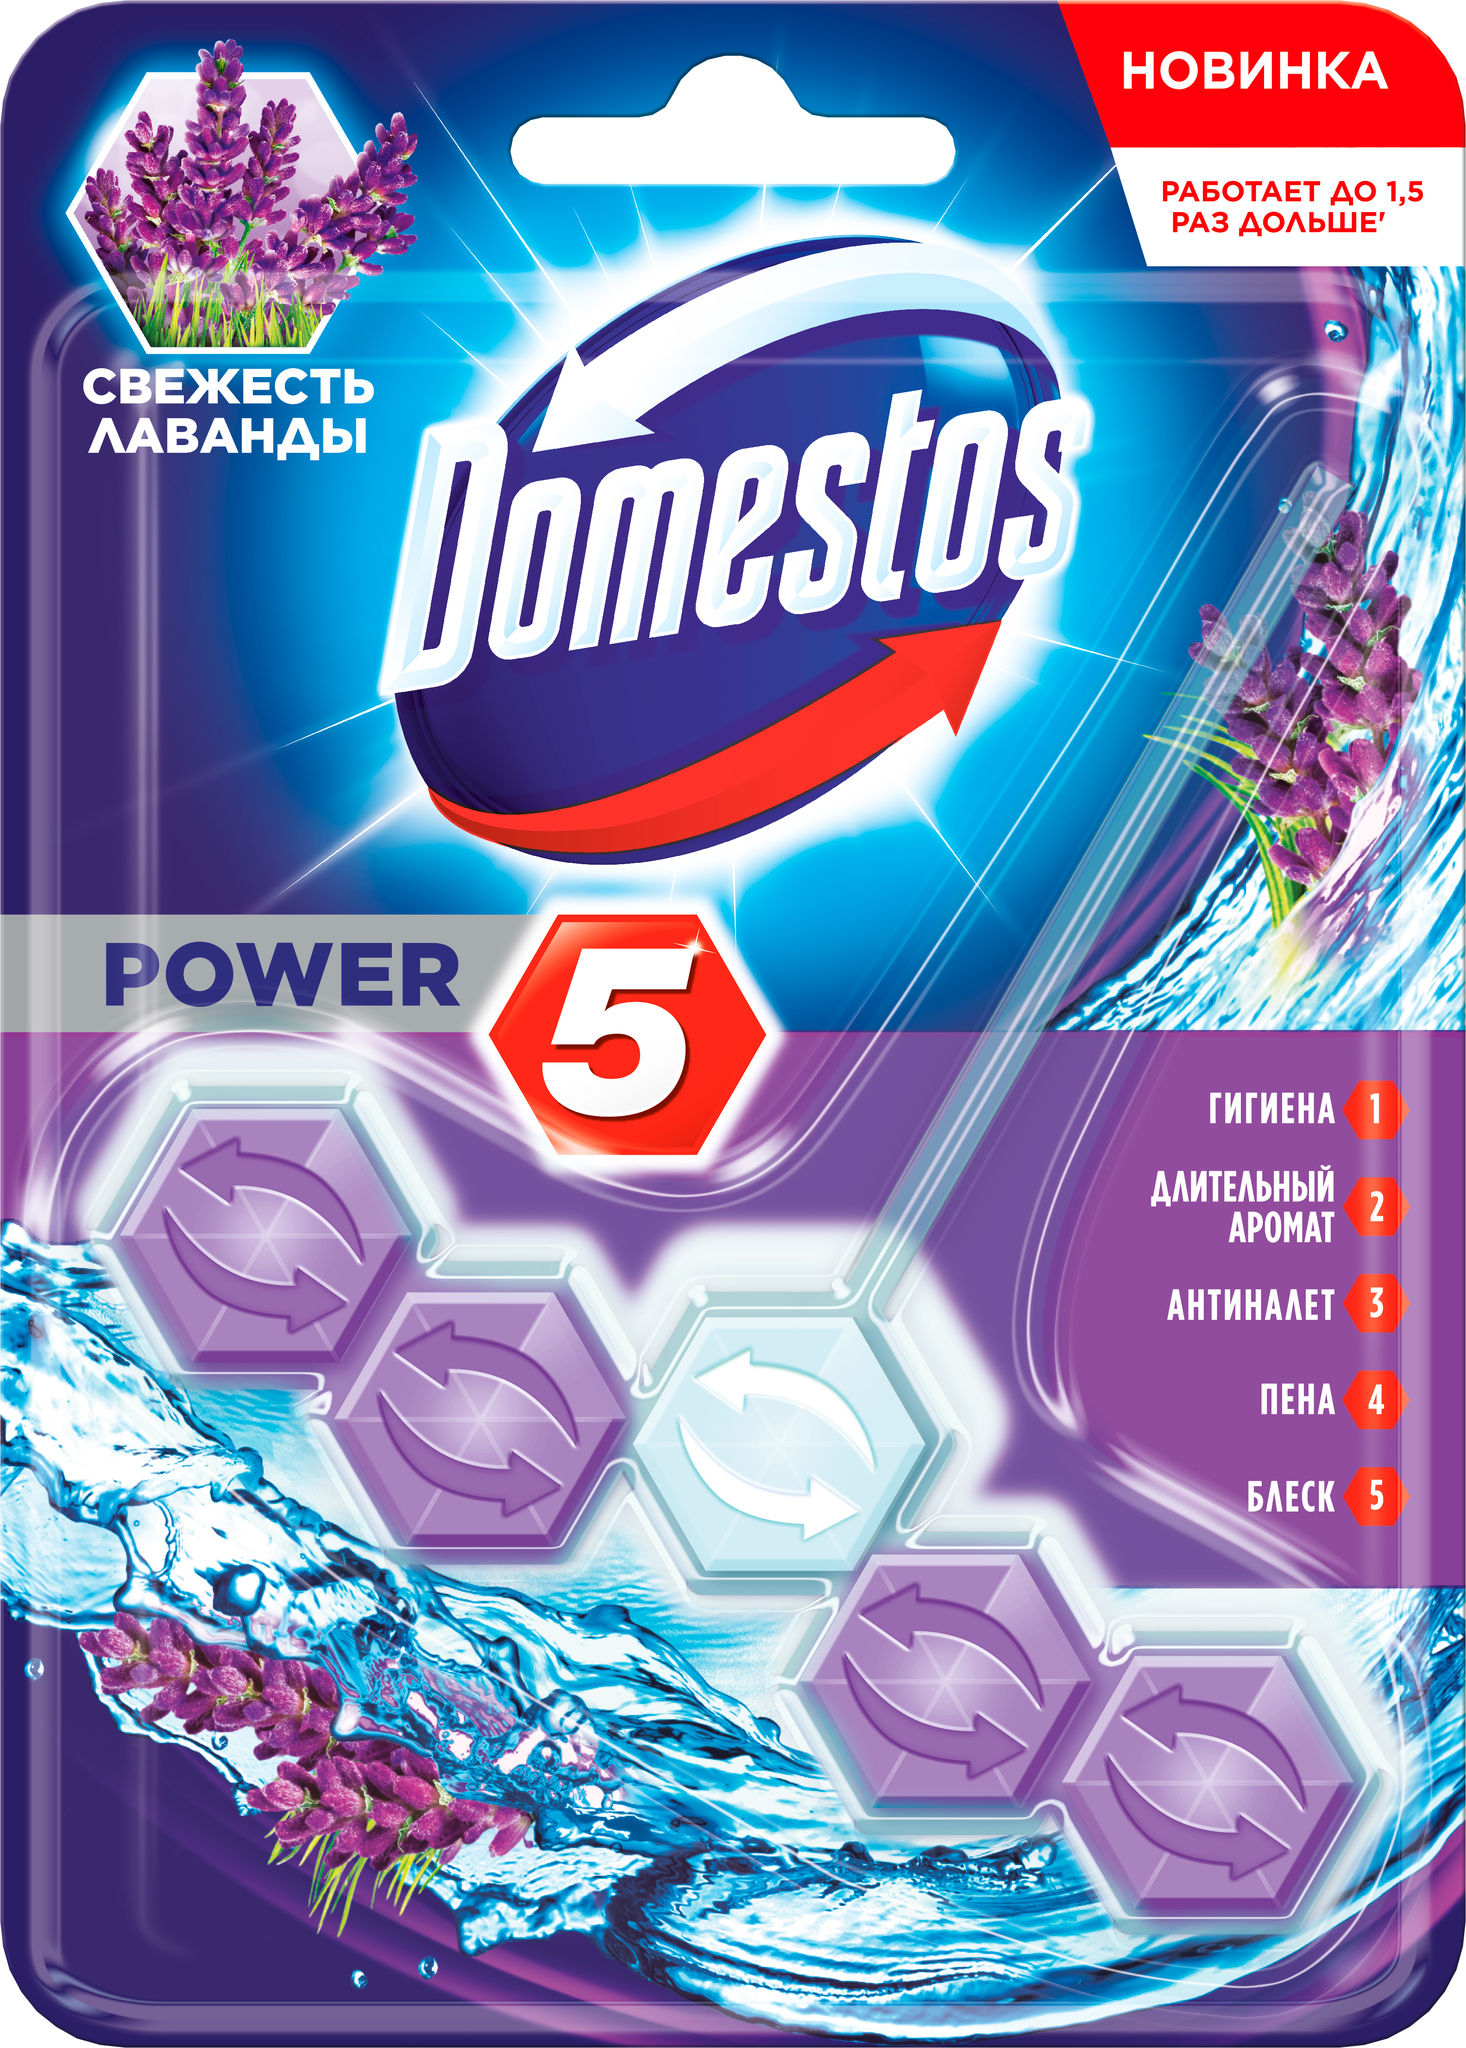 D:\products\domestos_8710447325971_images_9540719412.jpg